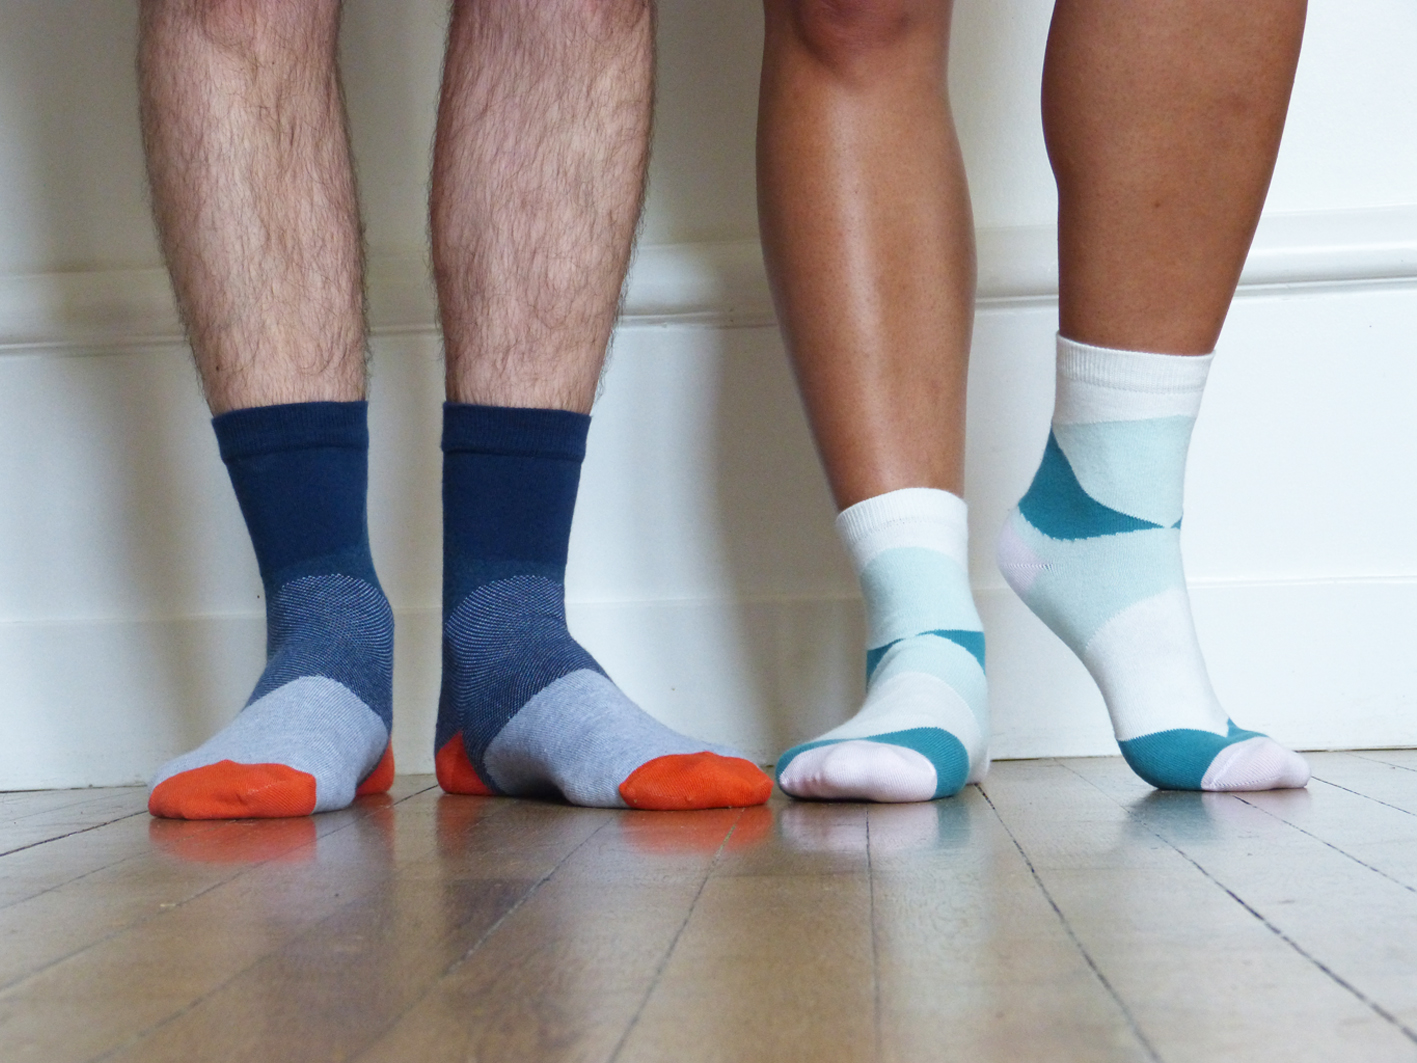 Bonpied, les chaussettes solidaires made in France